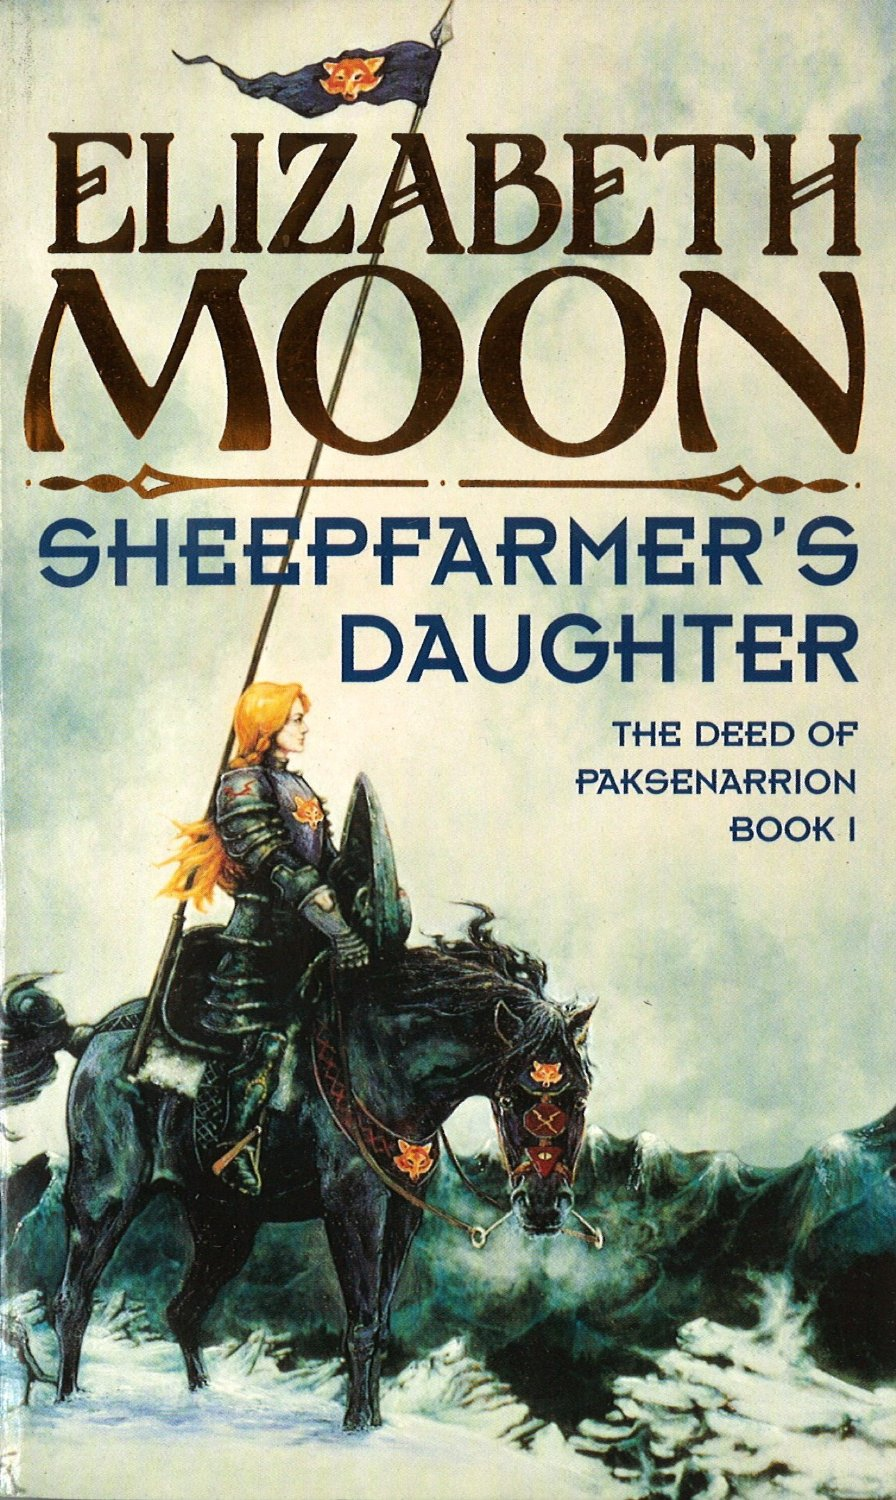 Sheepfarmer's Daughter